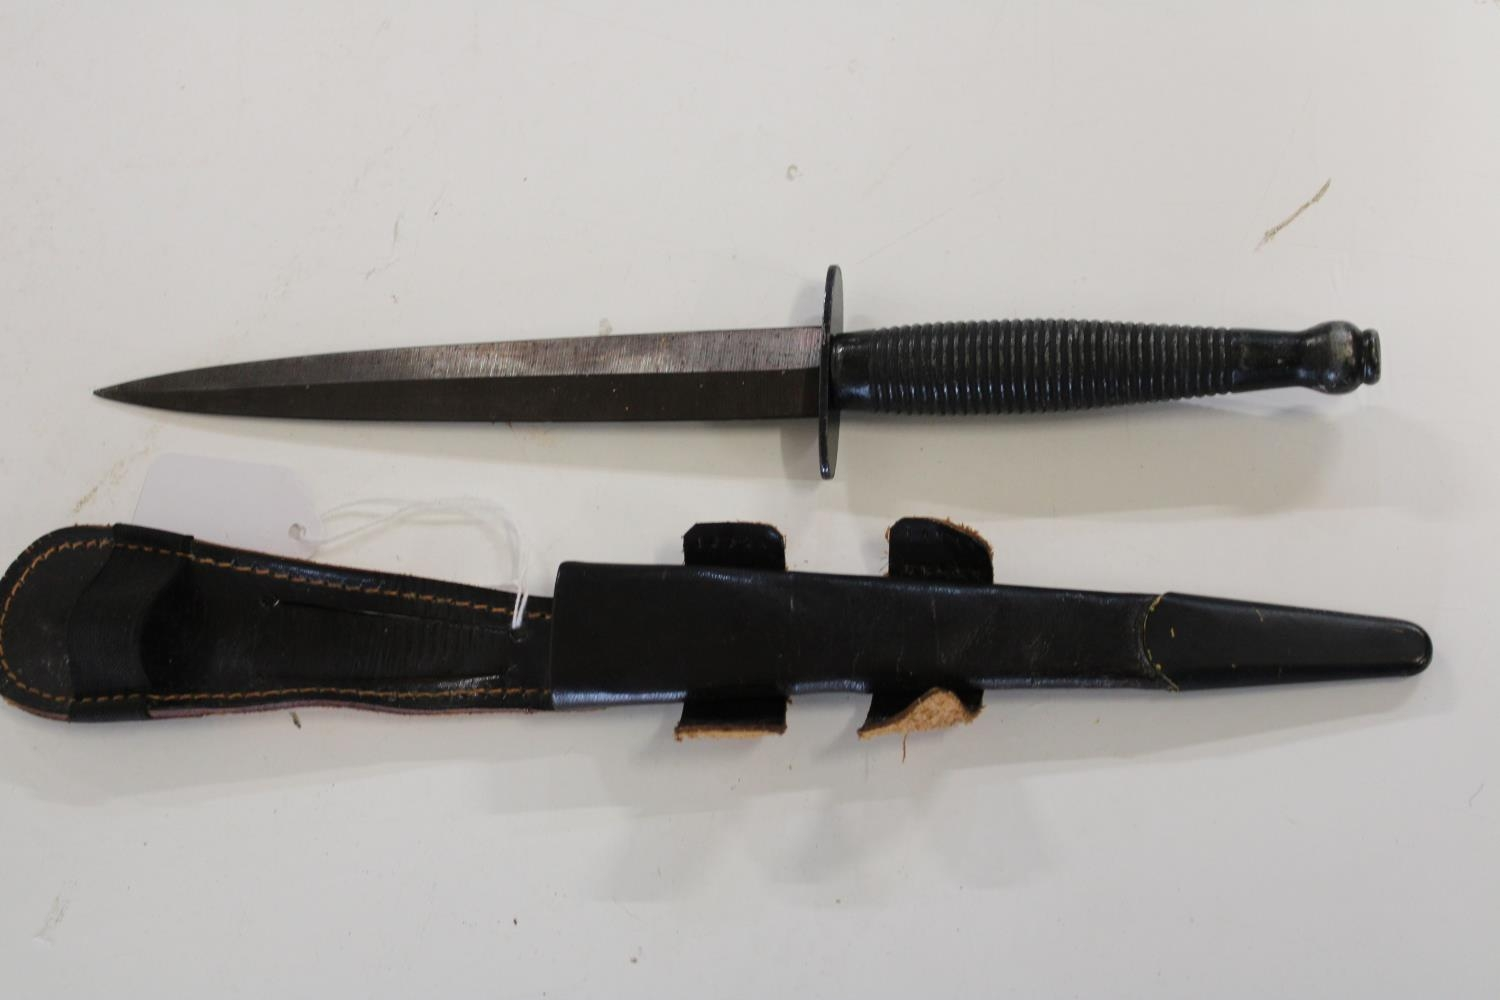 A Post War Fairbairn Sykes pattern 3 Commando fighting knife with sheath (believed to by a trophy